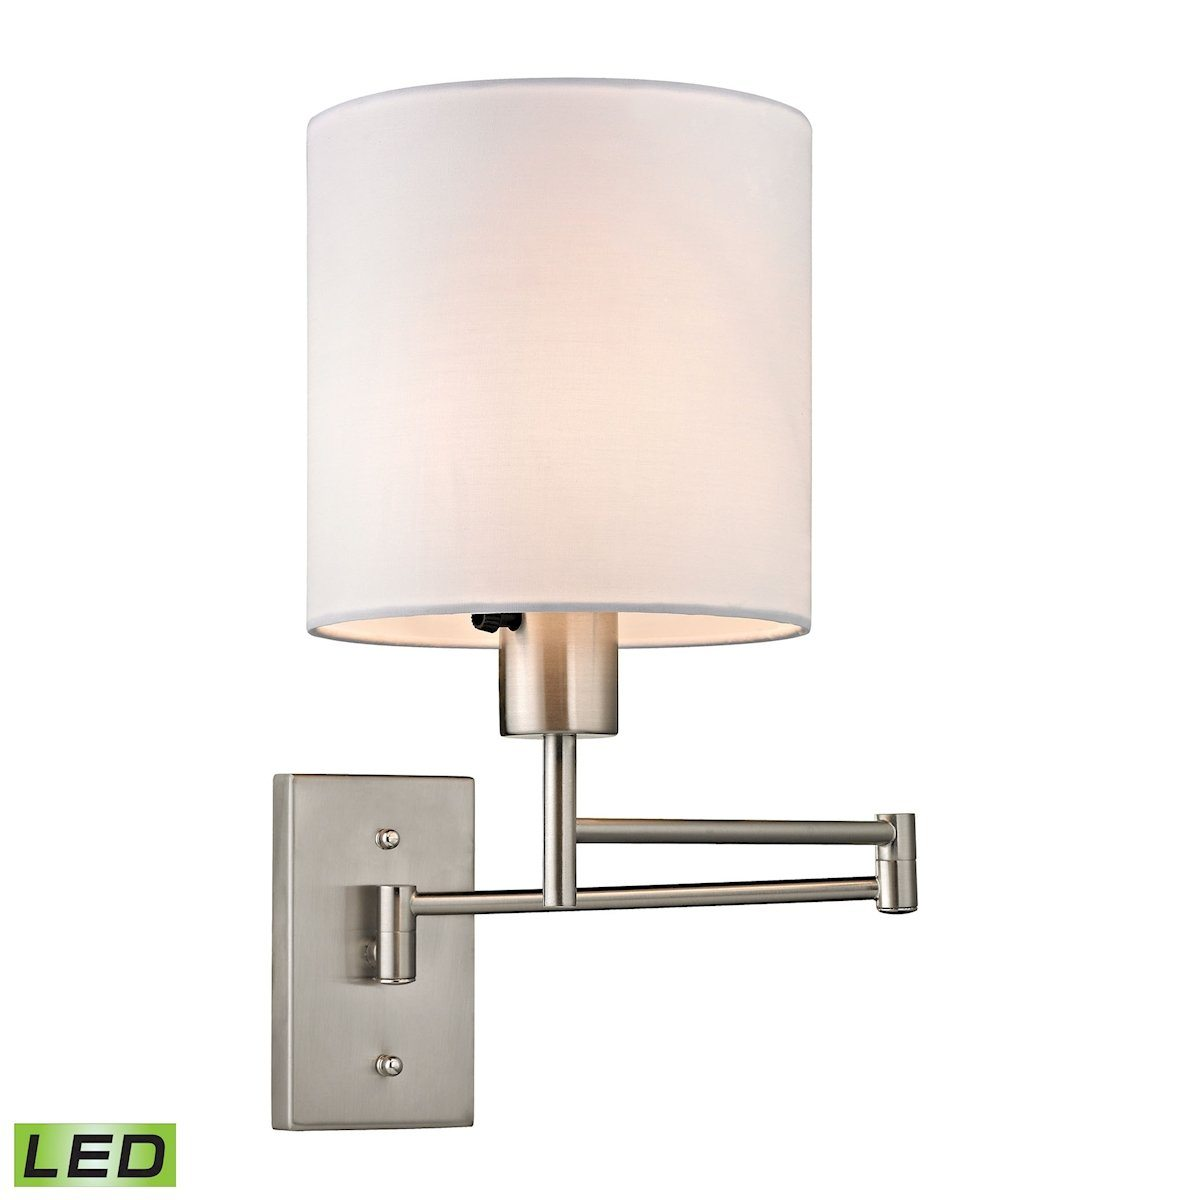 Carson 1 Light LED Swingarm Wall Sconce In Brushed Nickel Wall Sconce Elk Lighting